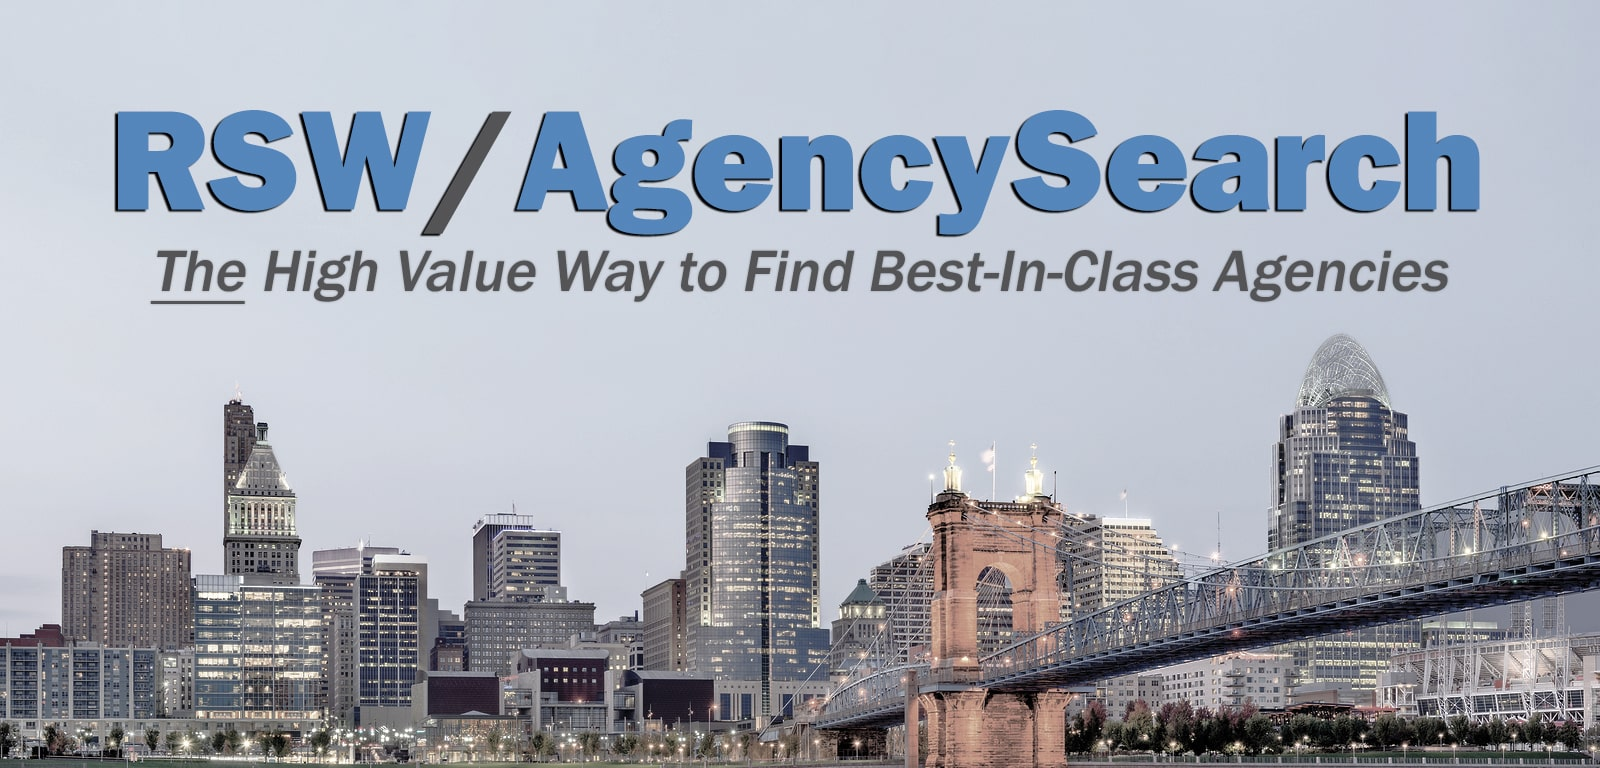 RSW/AgencySearch - The High Value Way to Find Best-In-Class Agencies